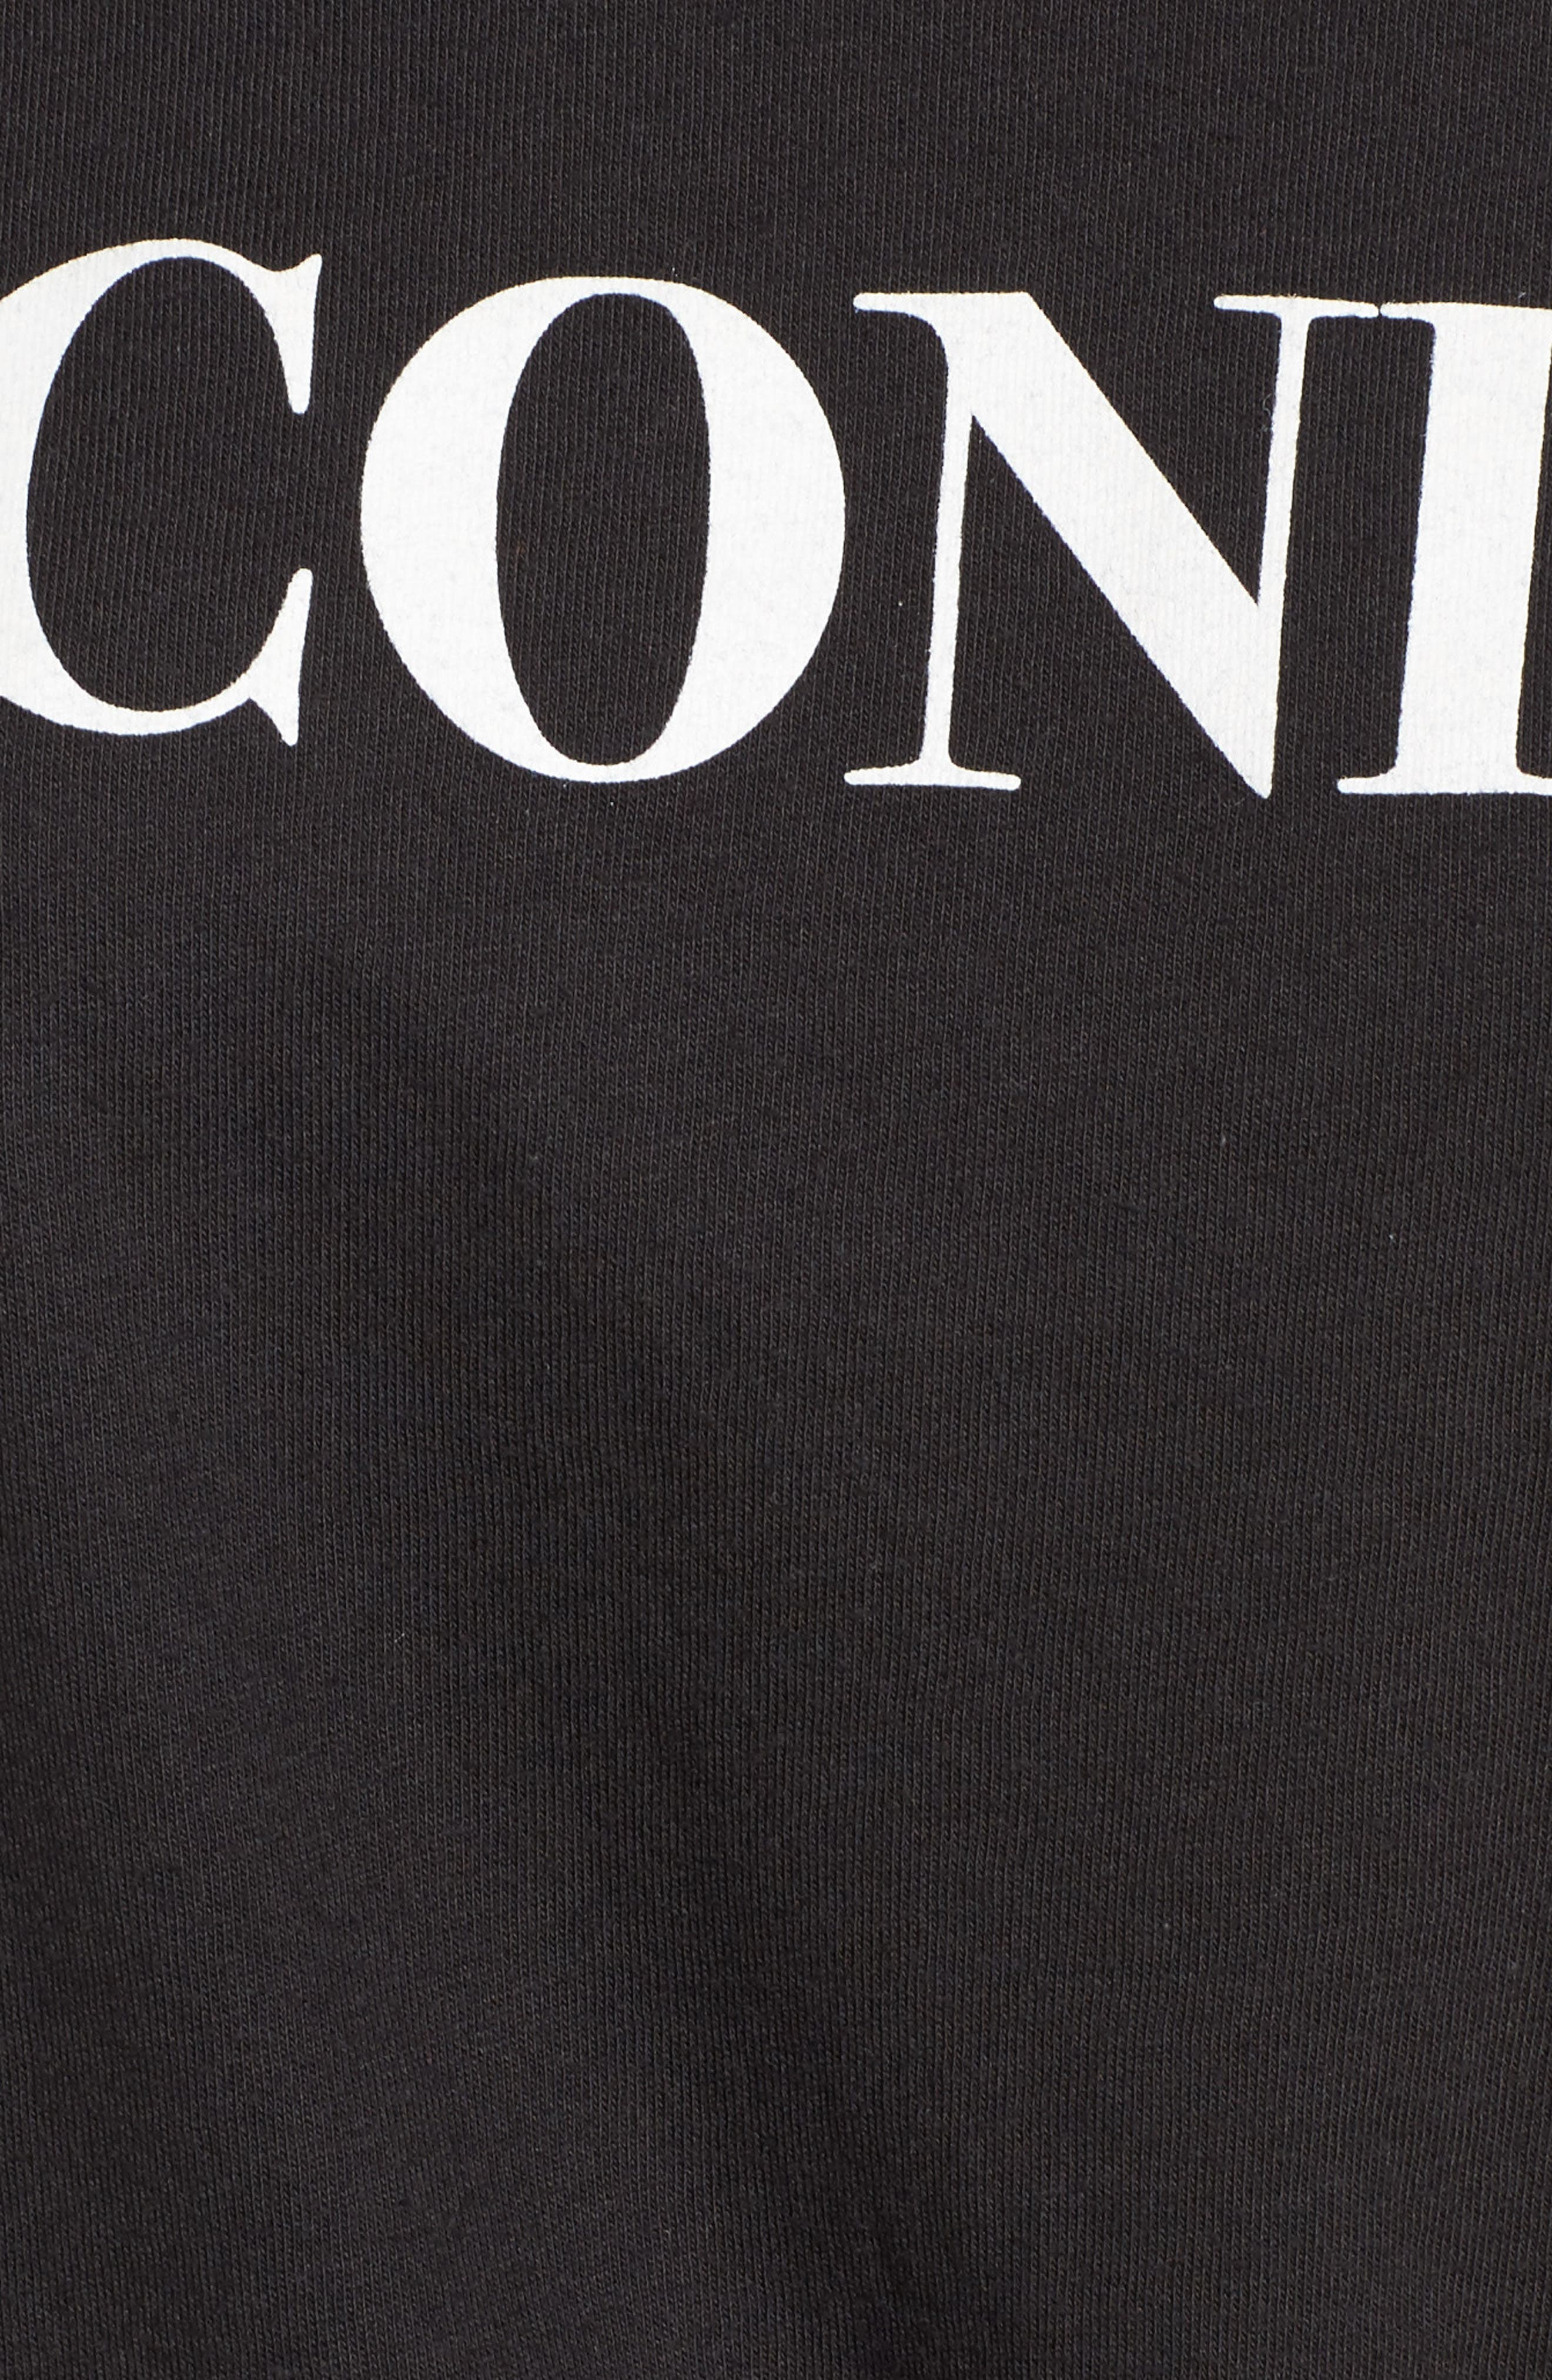 Iconic Slouched Graphic Tee,                             Alternate thumbnail 5, color,                             Black